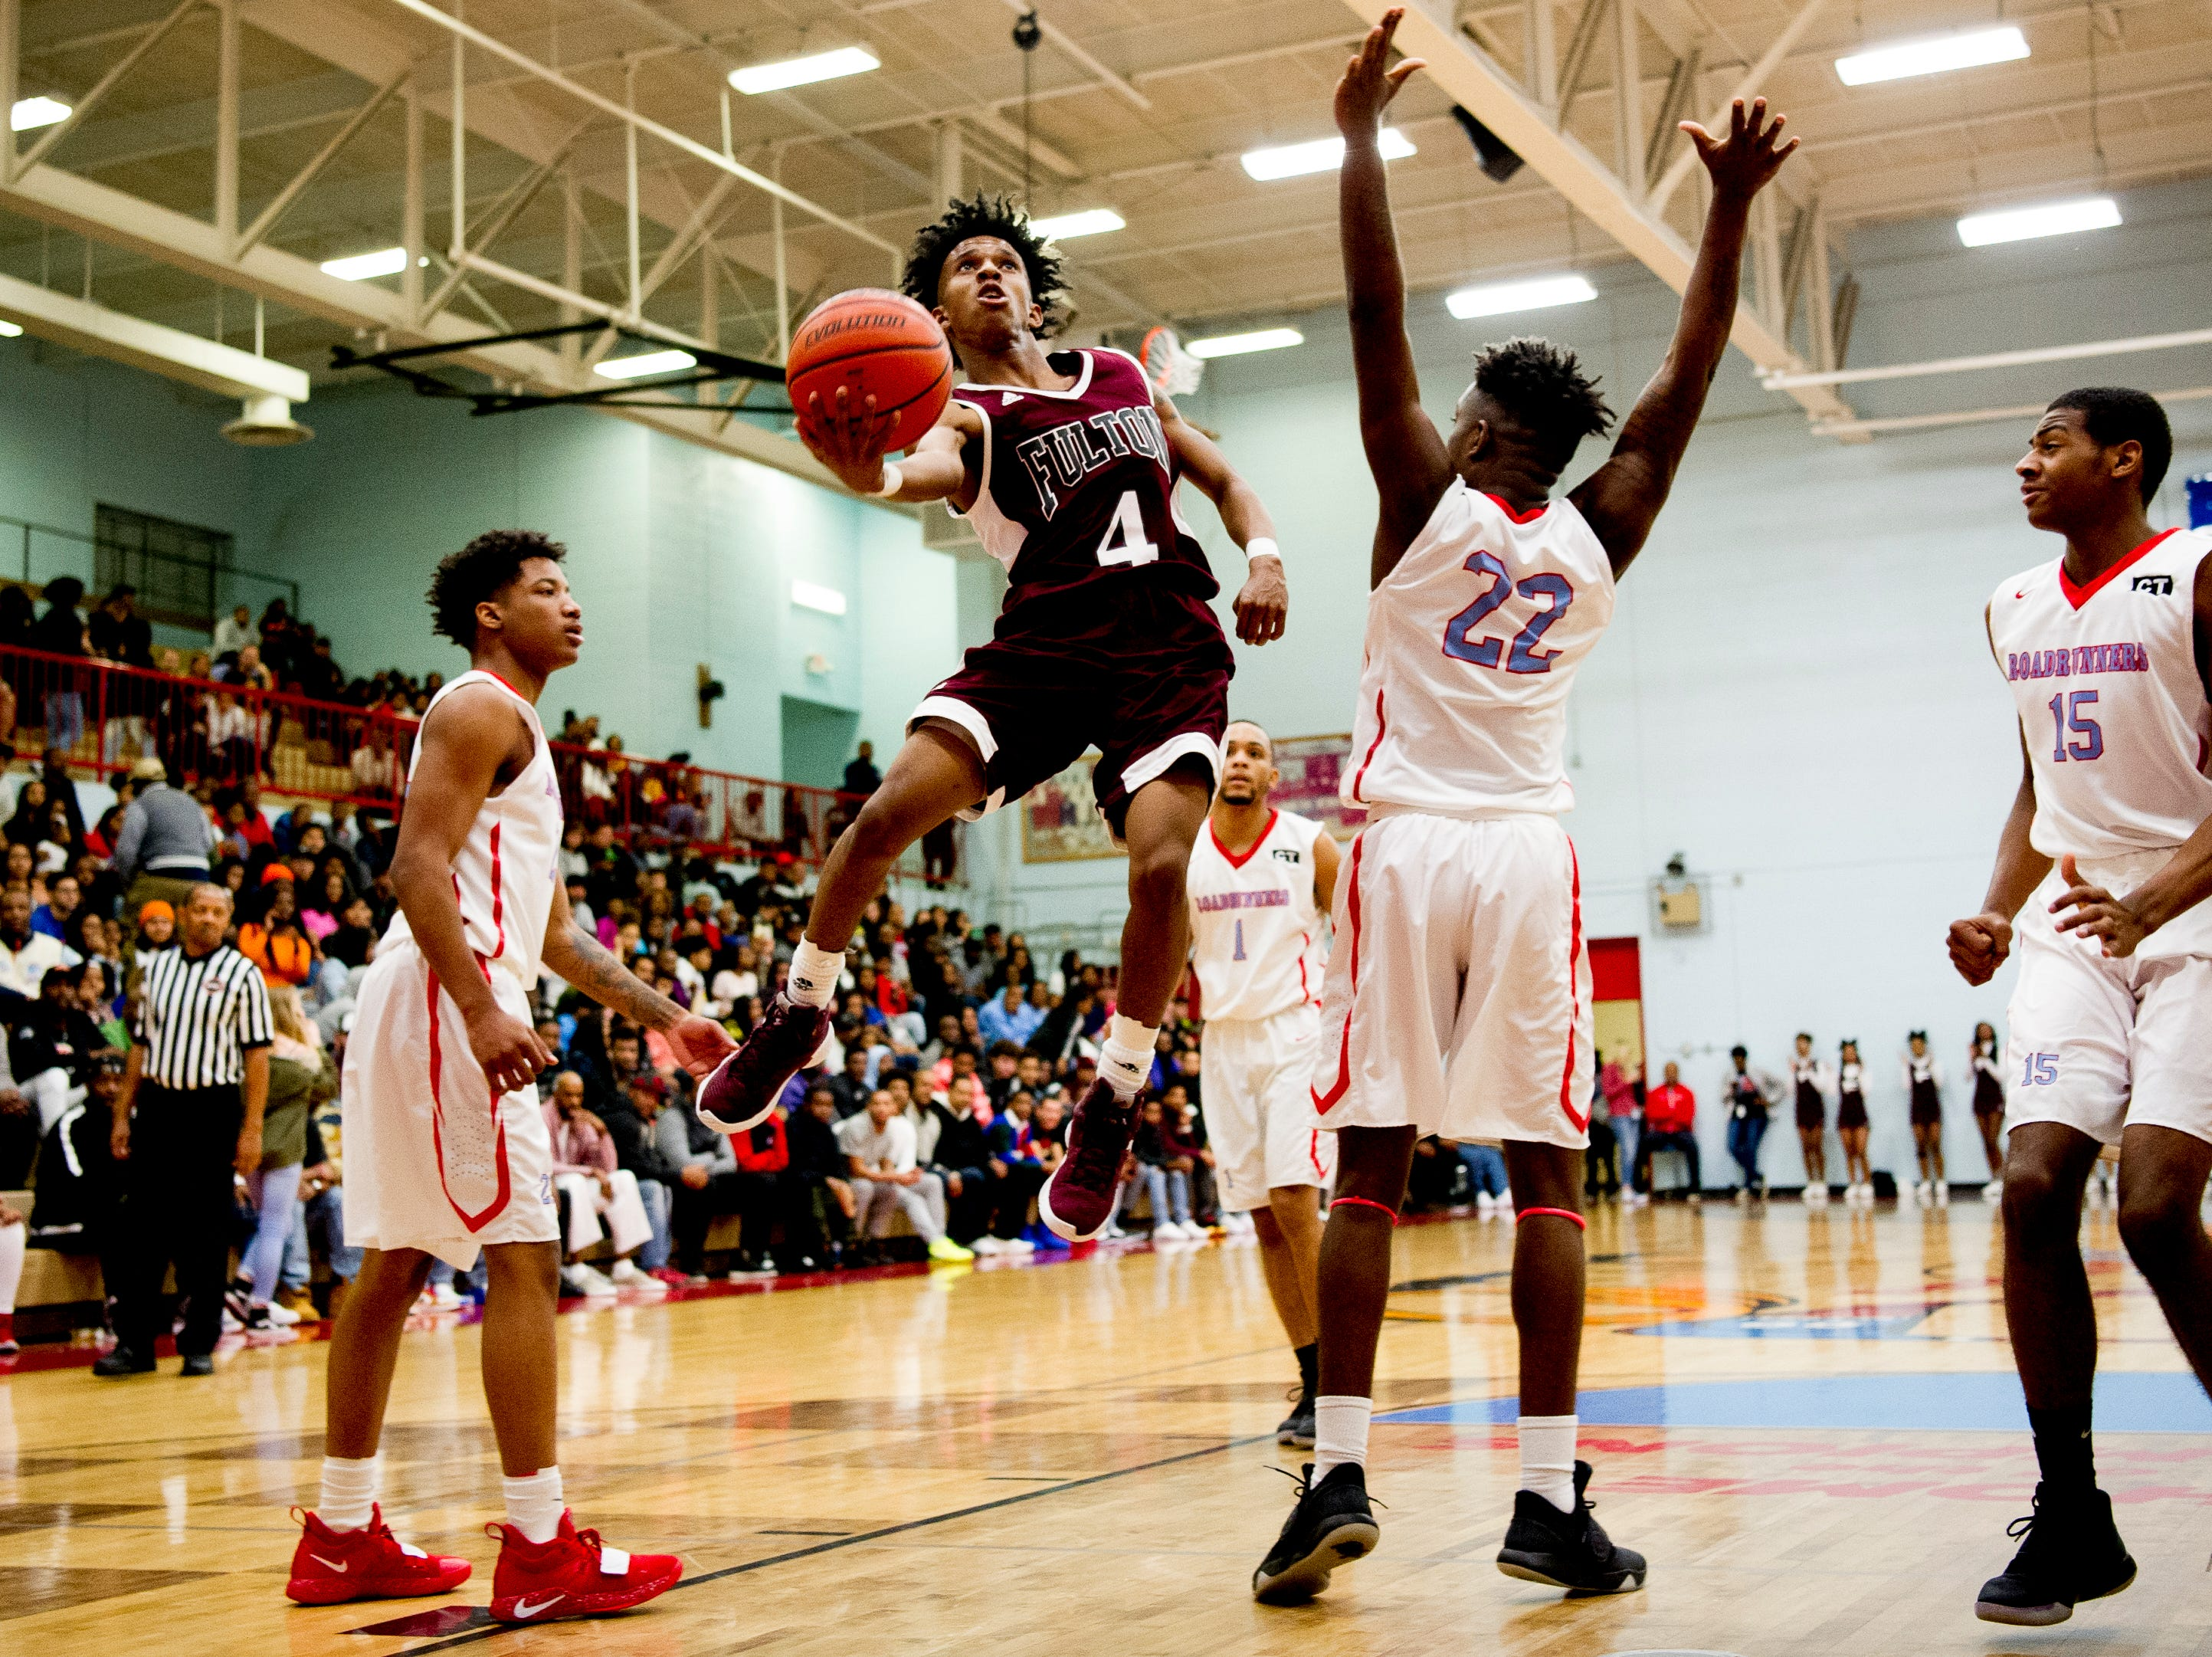 Fulton's Edward Lacy (4) shoots a layup during a game between Austin-East and Fulton at Austin-East High School in Knoxville, Tennessee on Saturday, January 5, 2019.